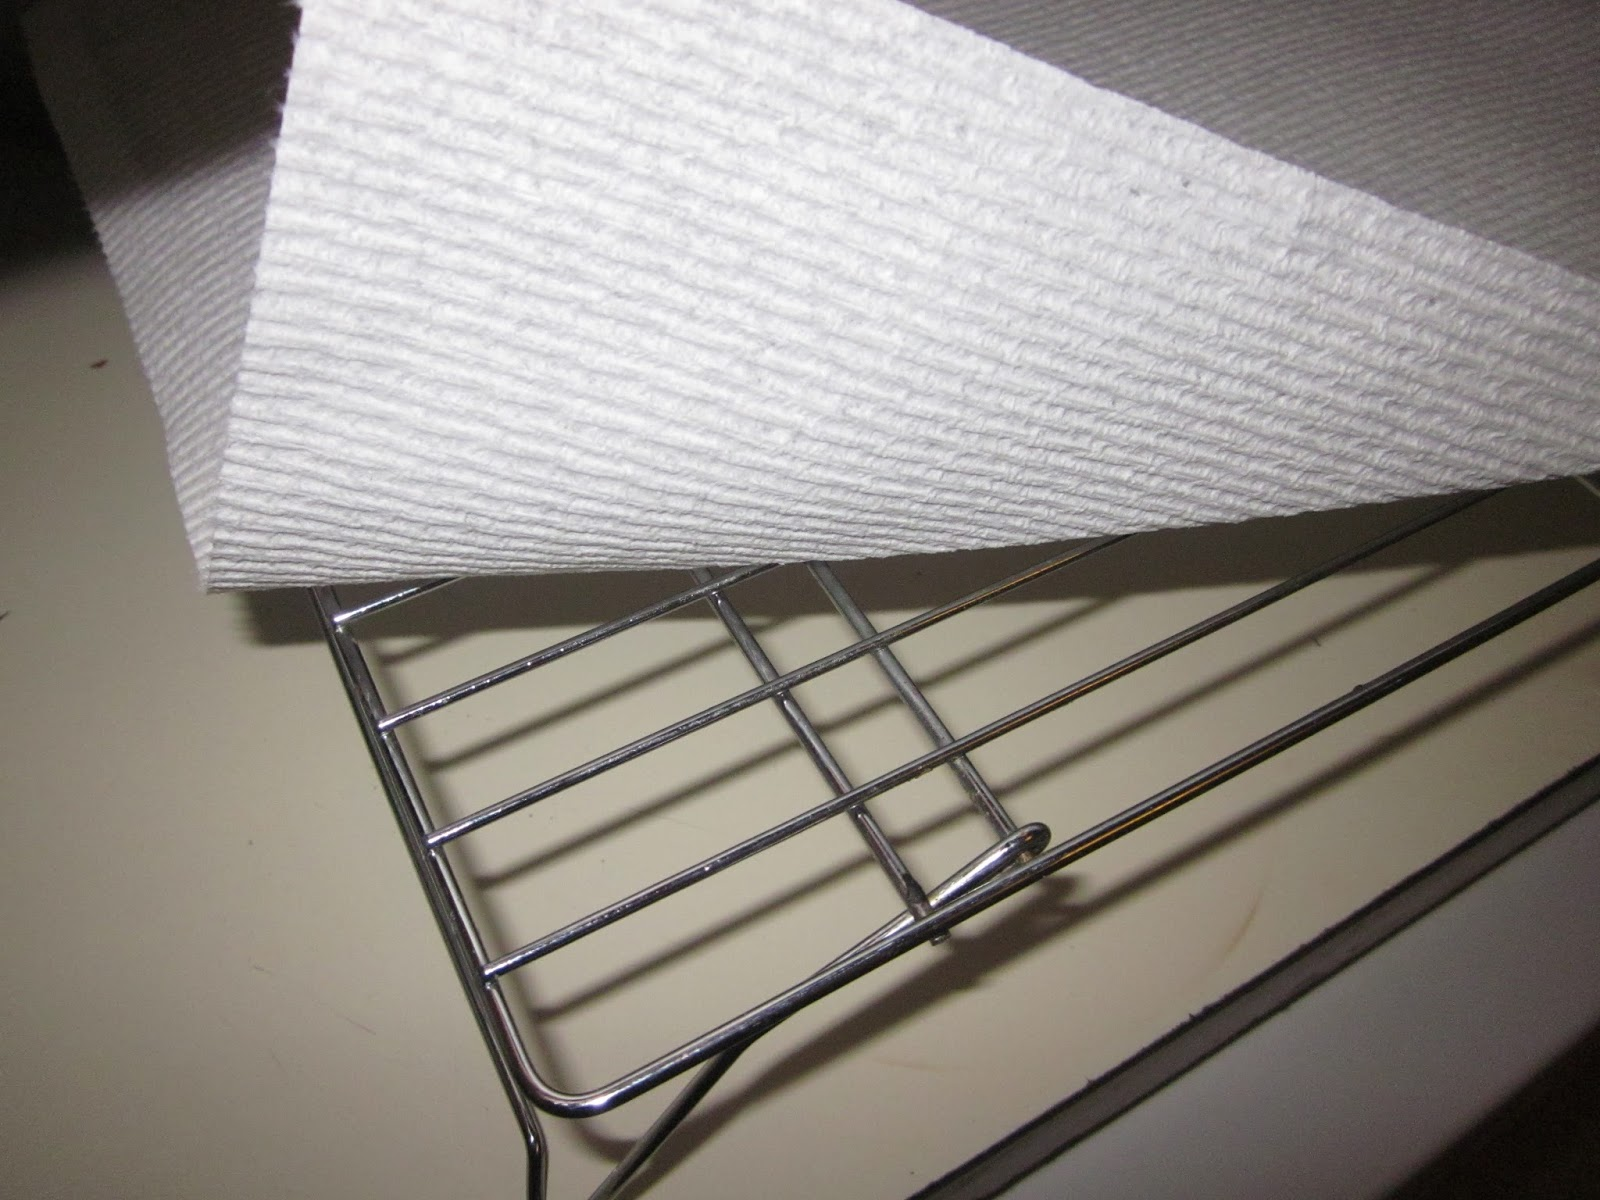 diy makeup brush drying rack for cleaning makeup brushes